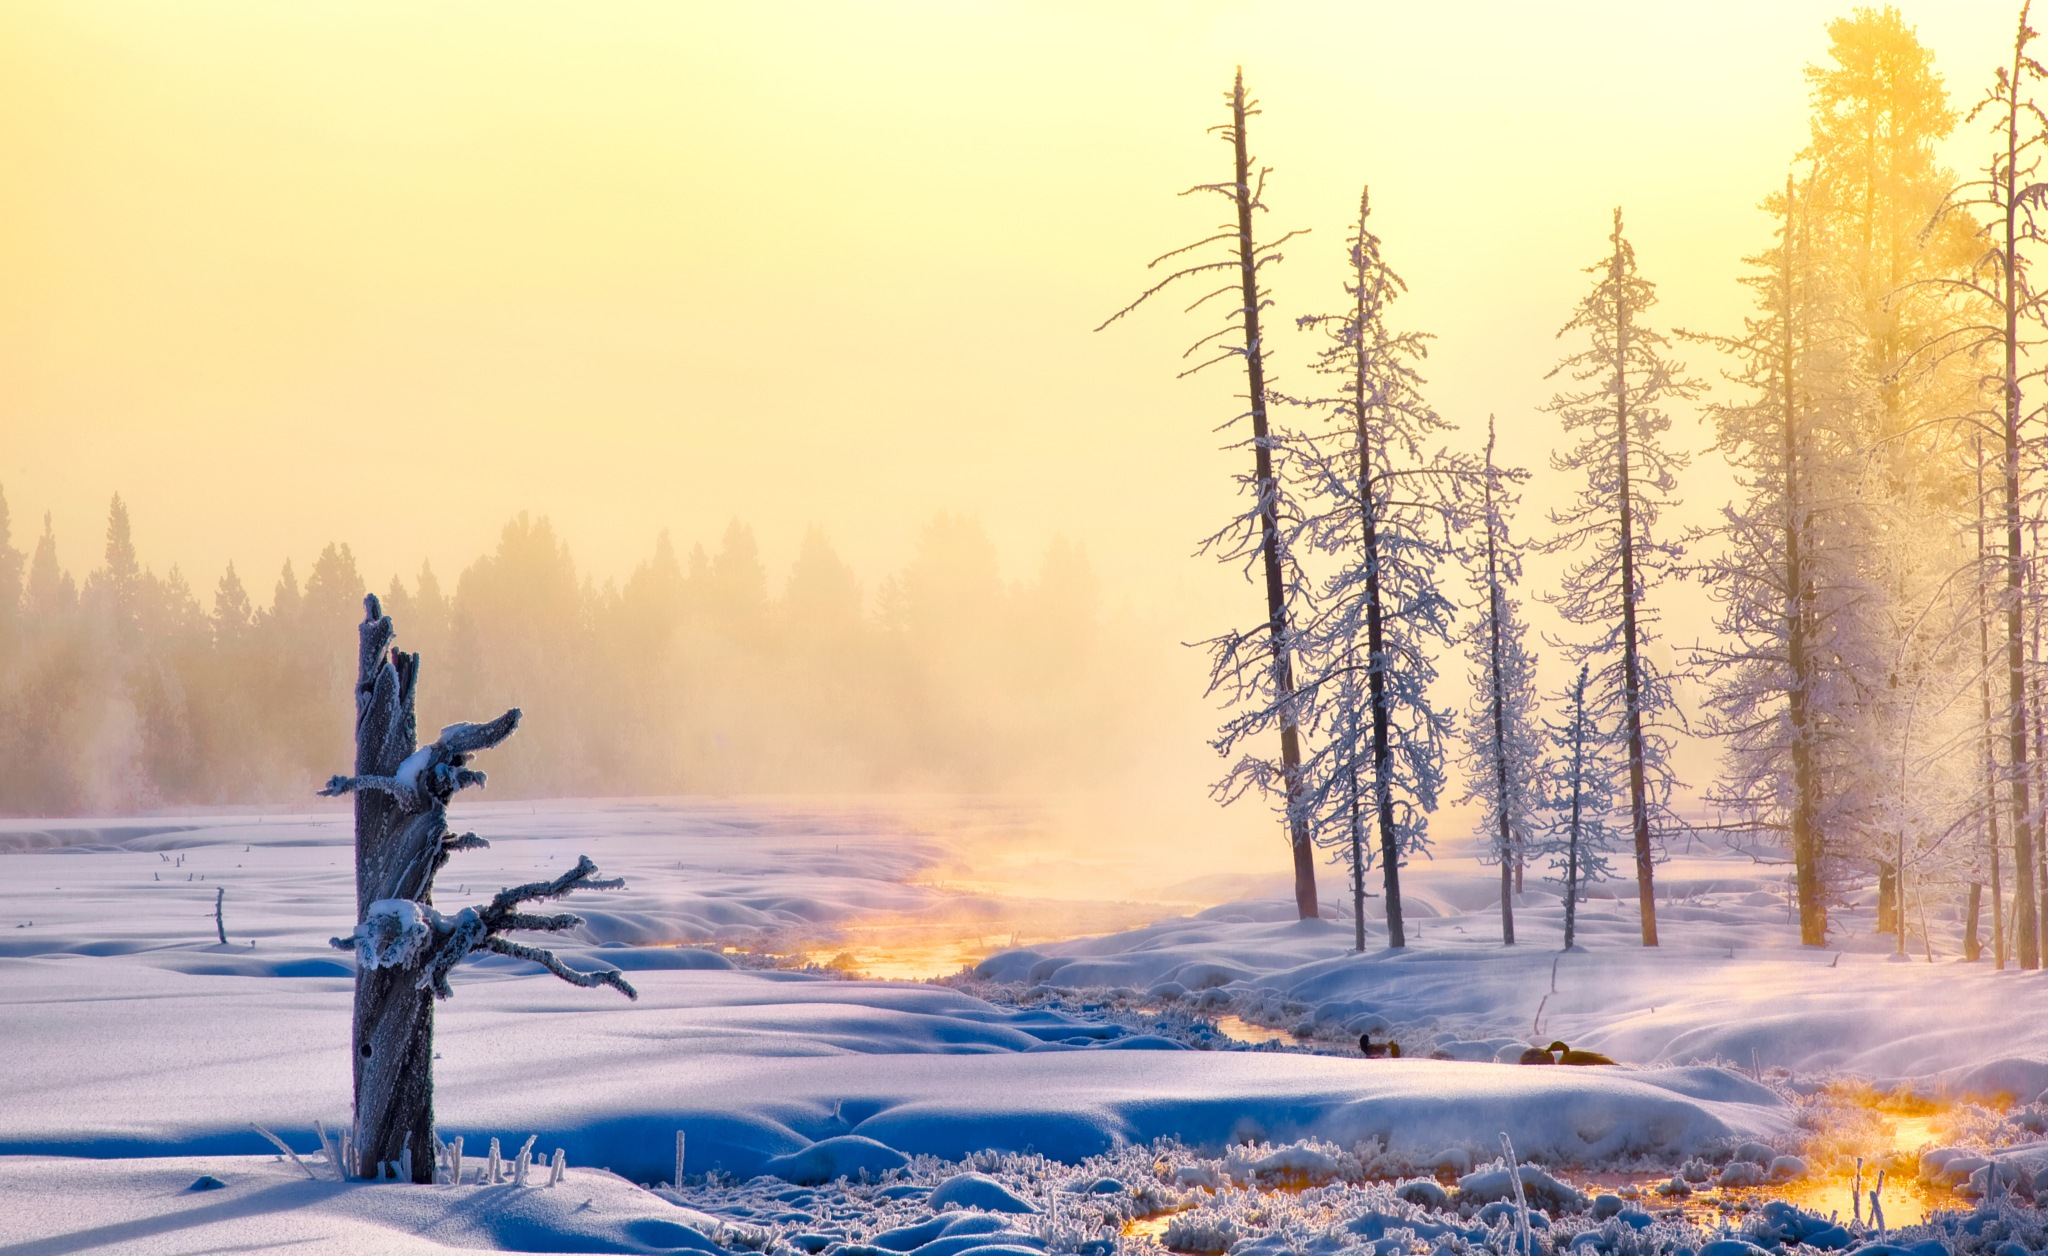 Foggy morning by Dianachang